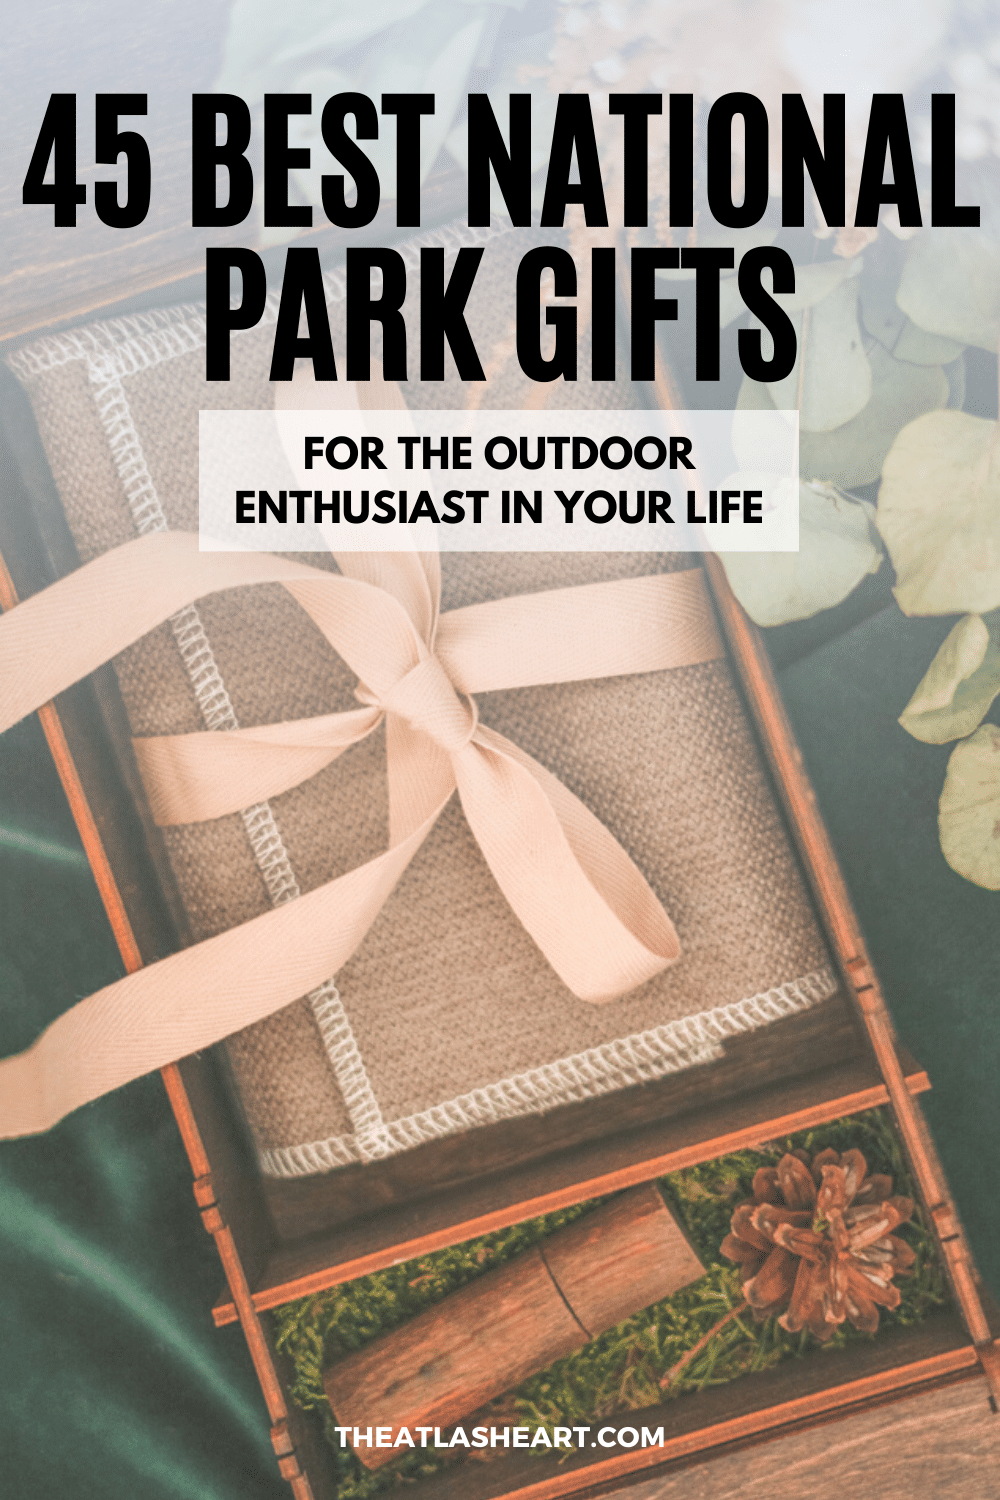 45 Best National Park Gifts for the Outdoor Enthusiast in Your Life